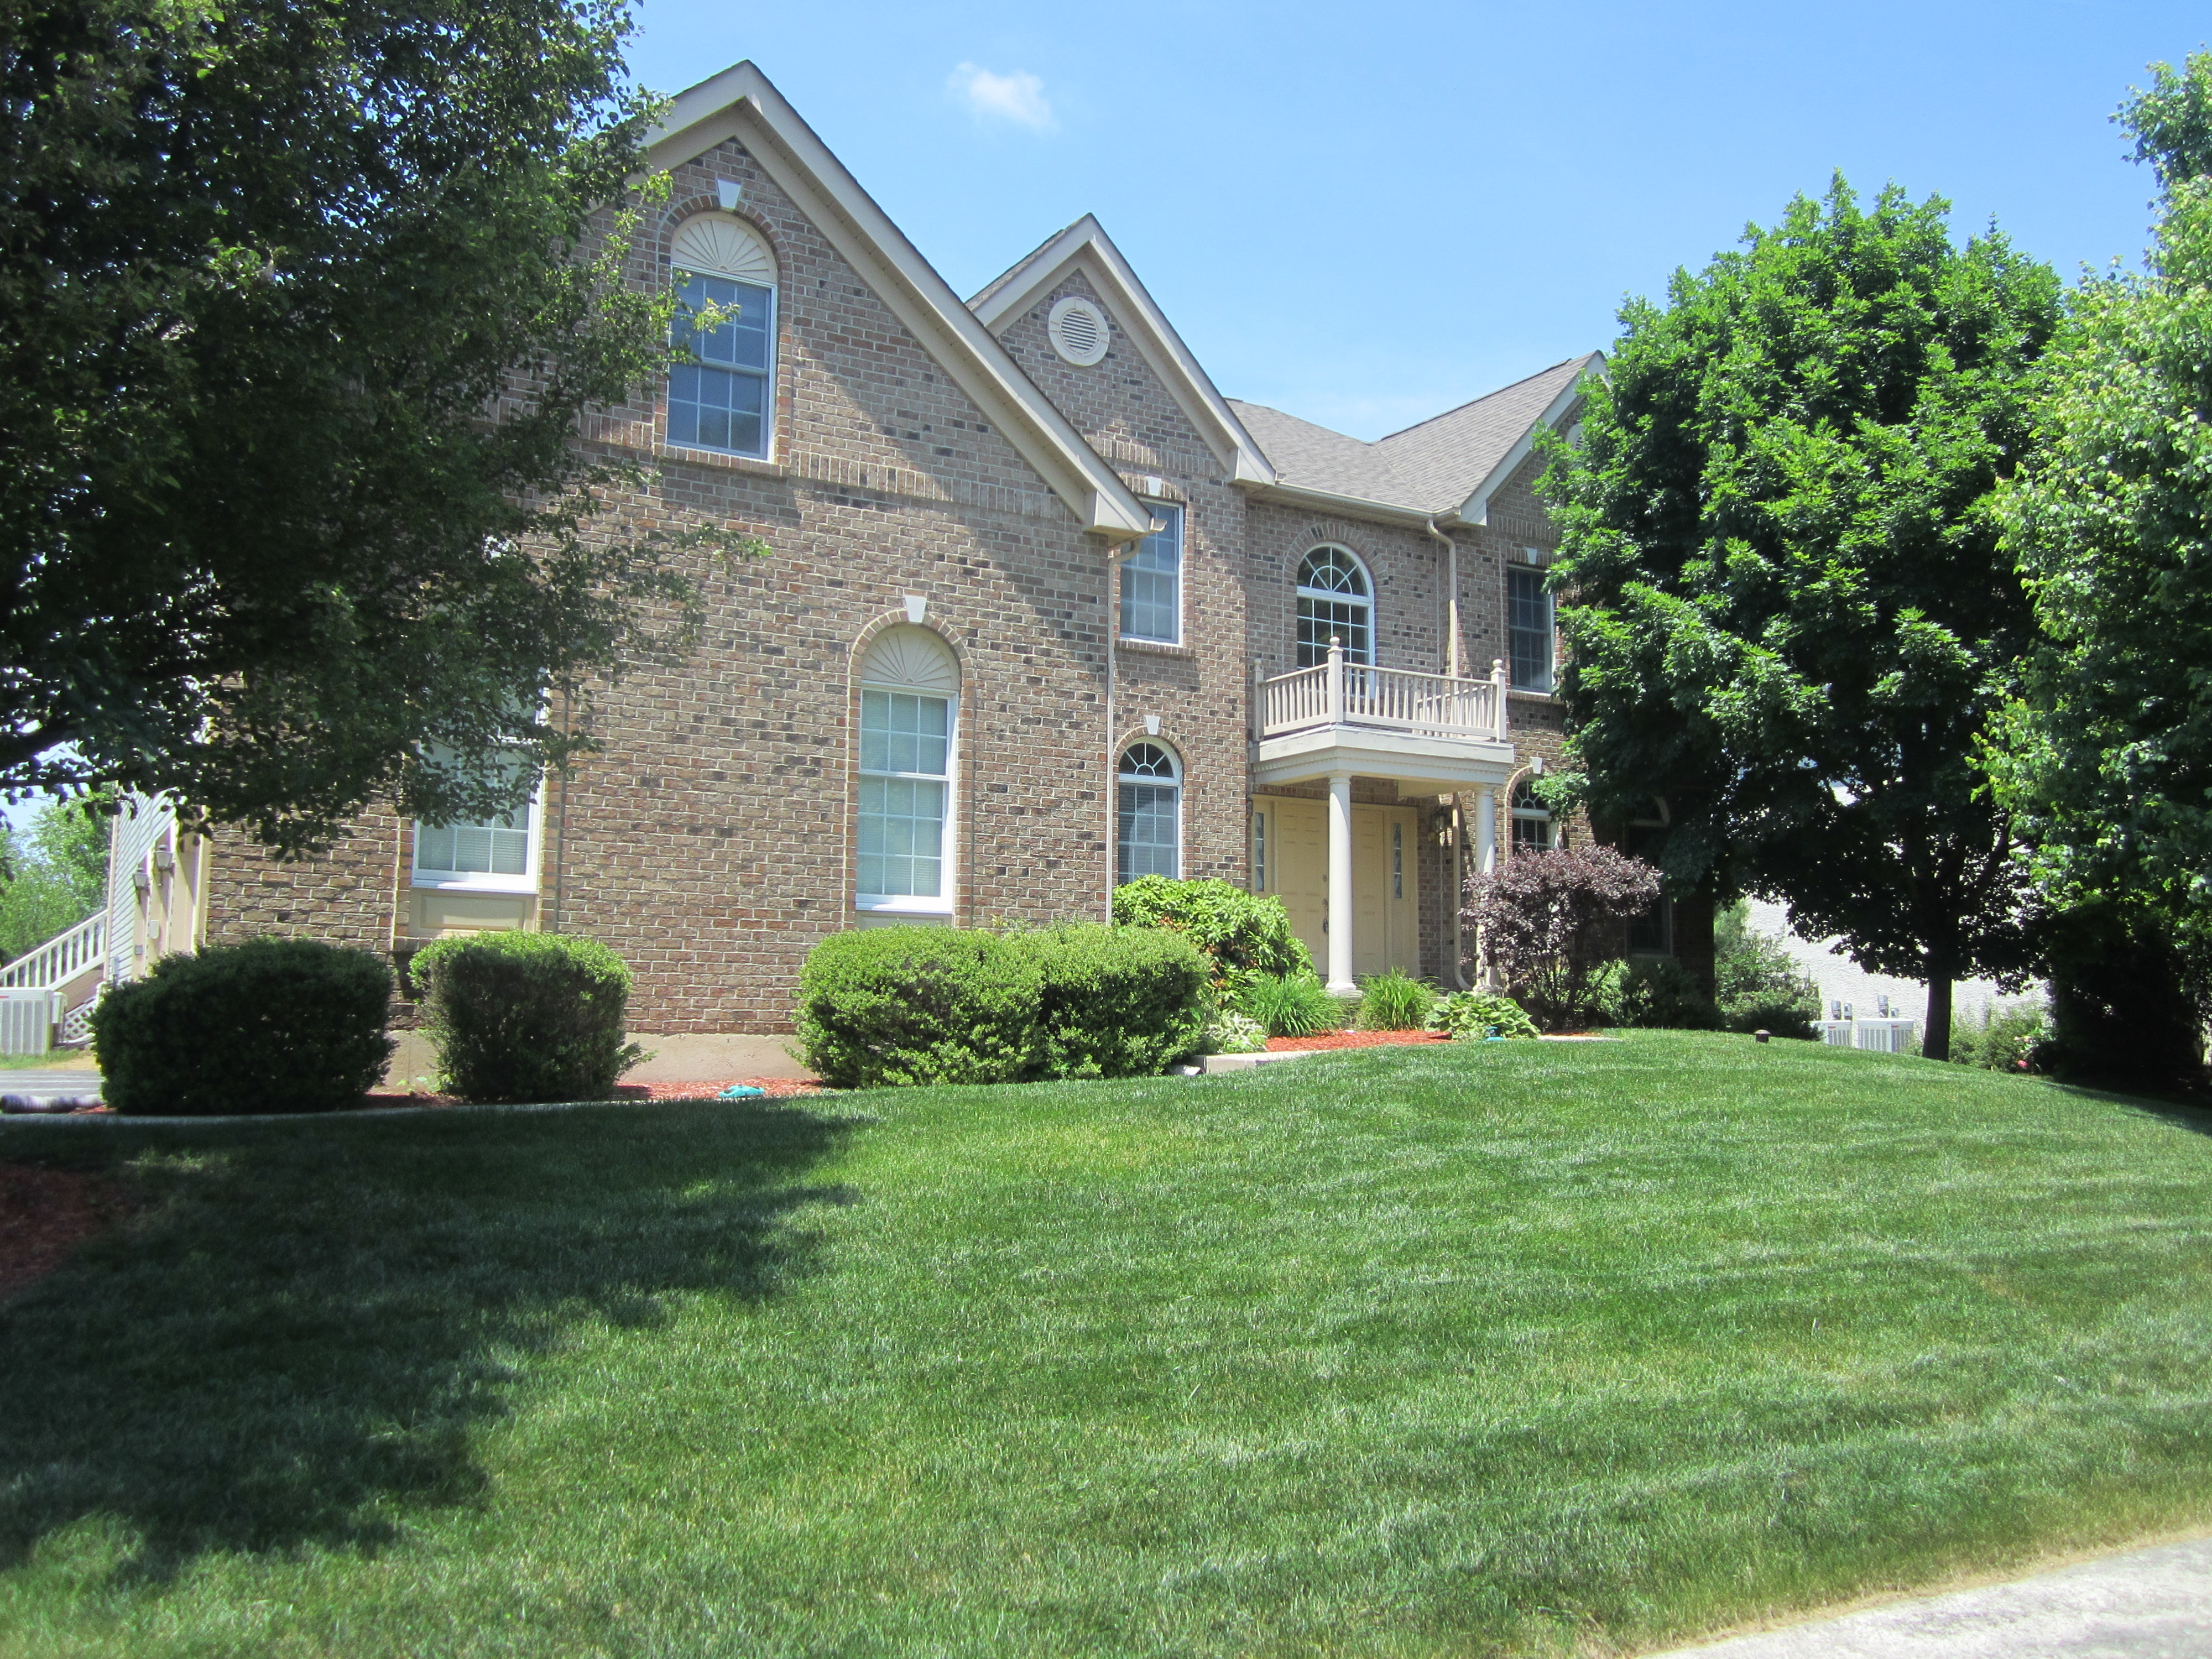 North Penn Area Homes Selling Quickly